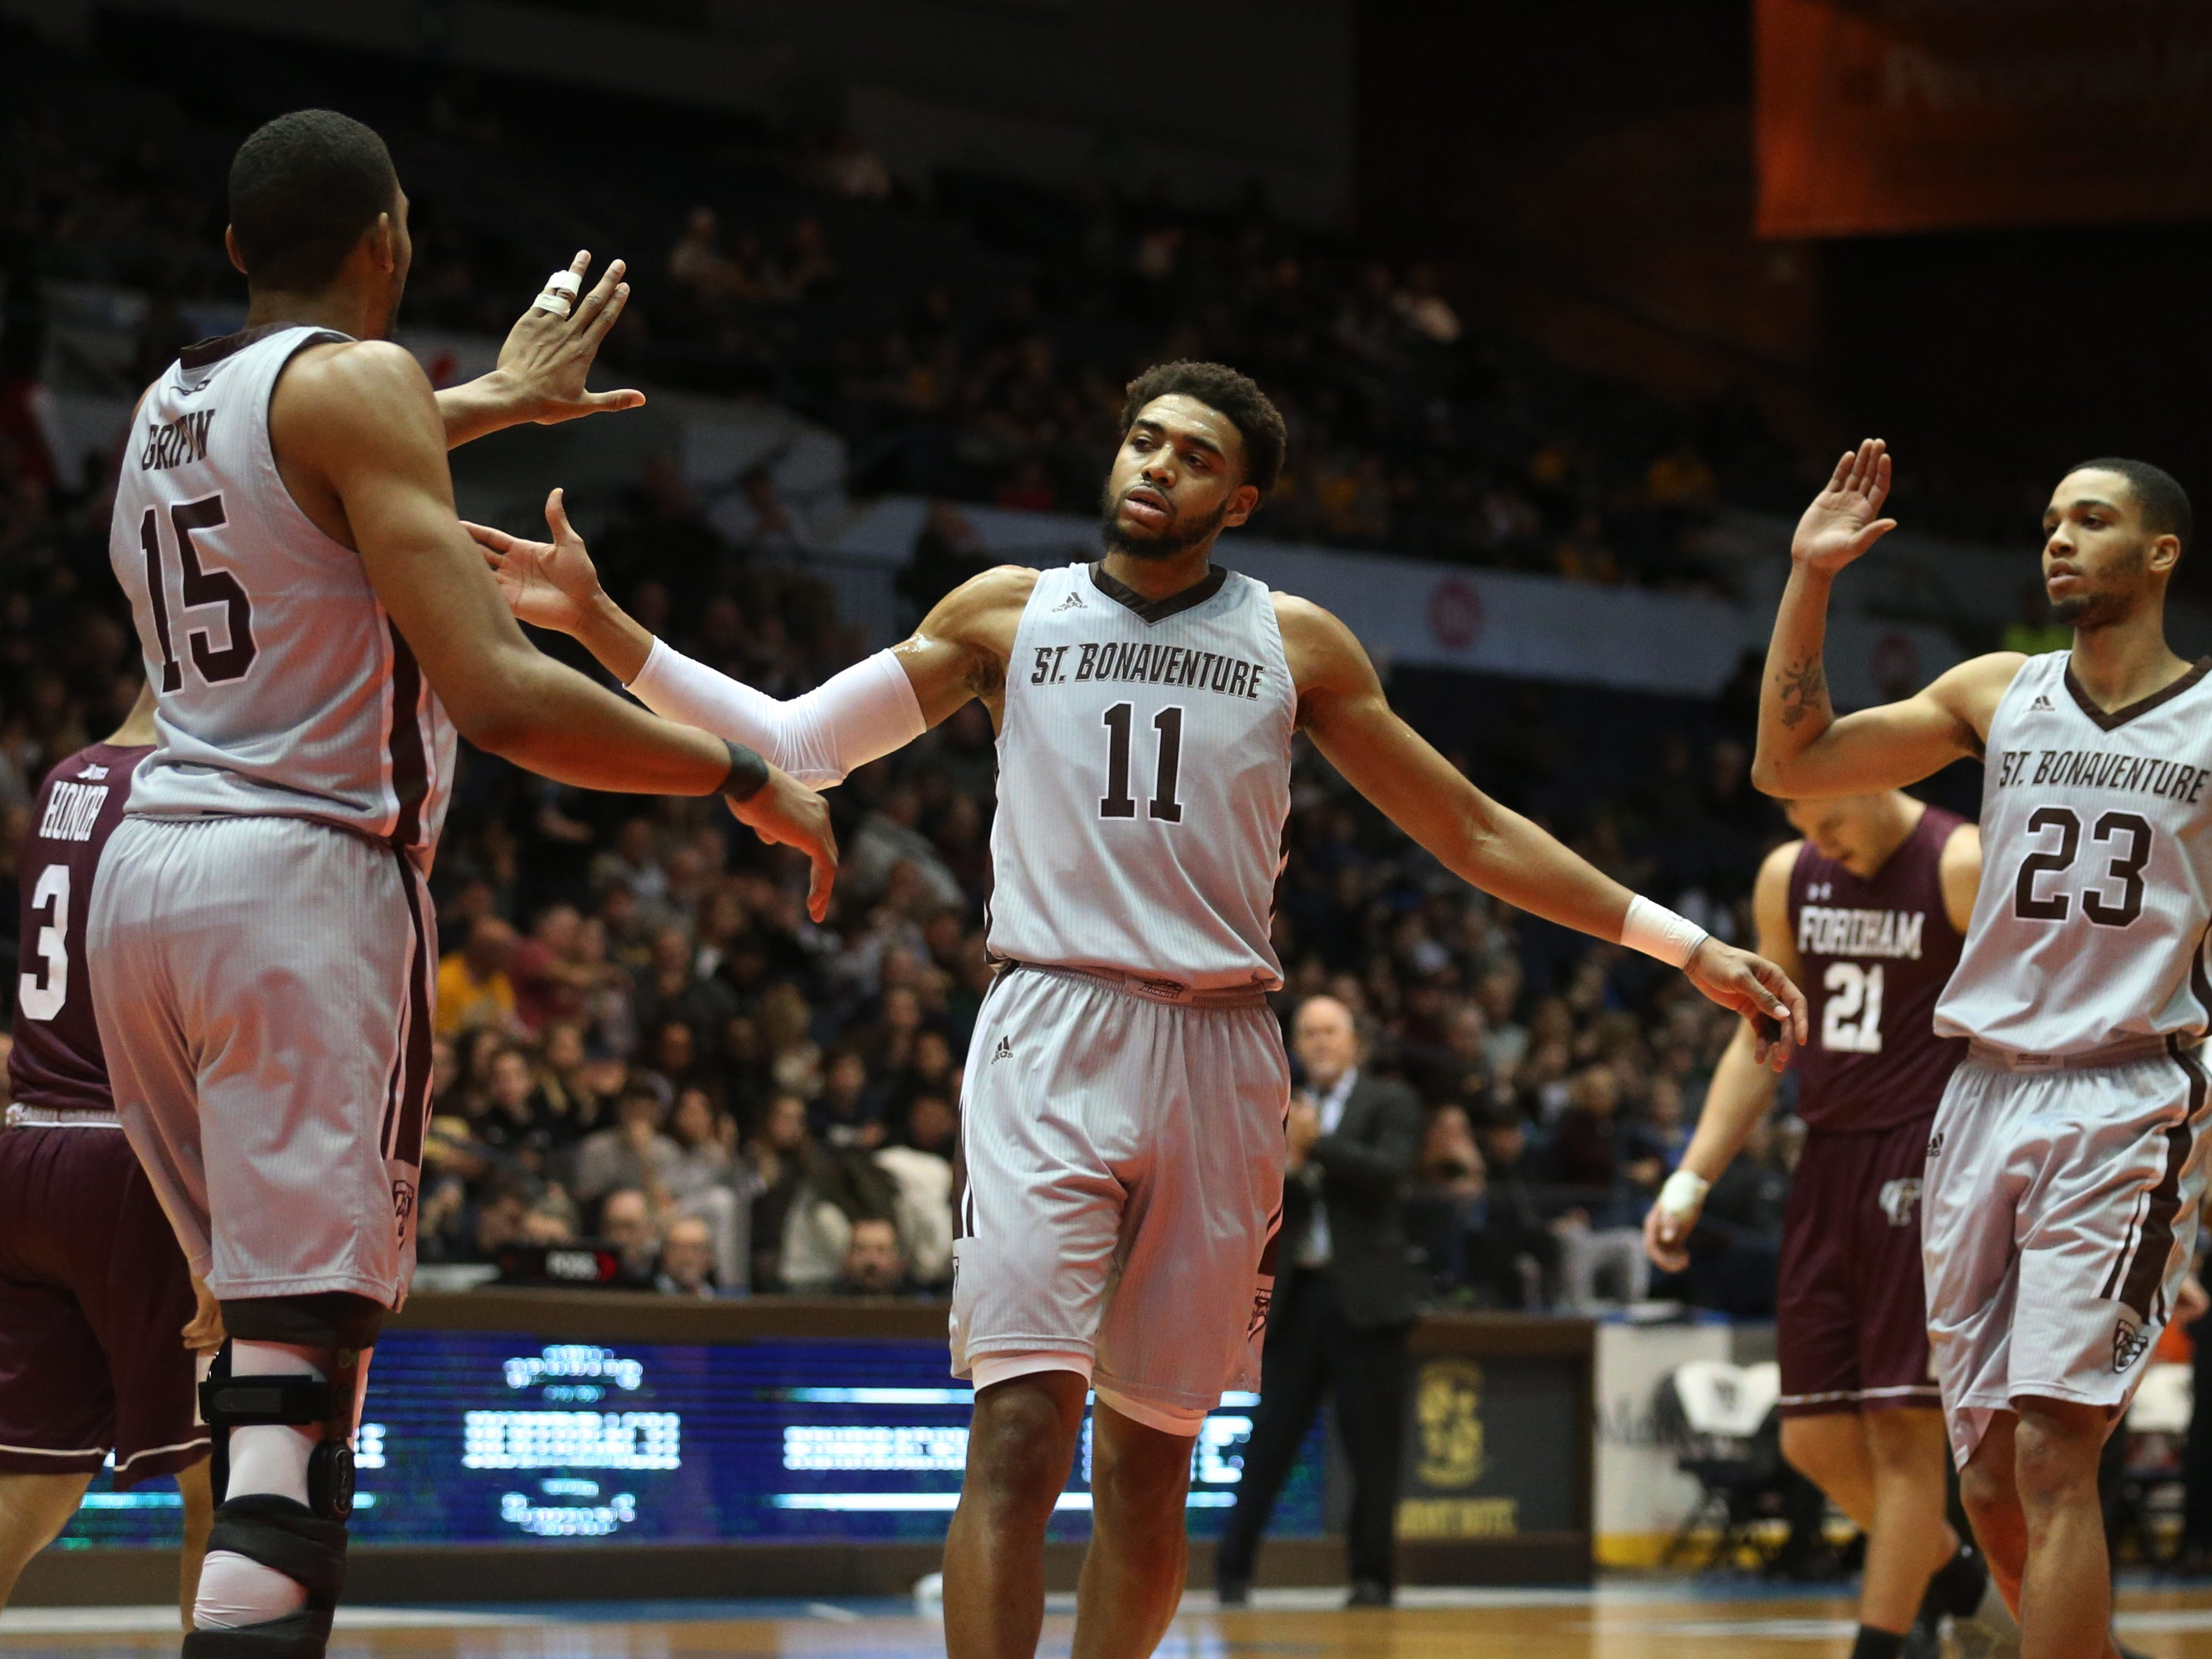 St. Bonaventure's LaDarien Griffin, left, celebrates with teammates Courtney Stockard, center, and Jalen Poyser, right, after getting the bucket and the foul on Fordham in the first half.